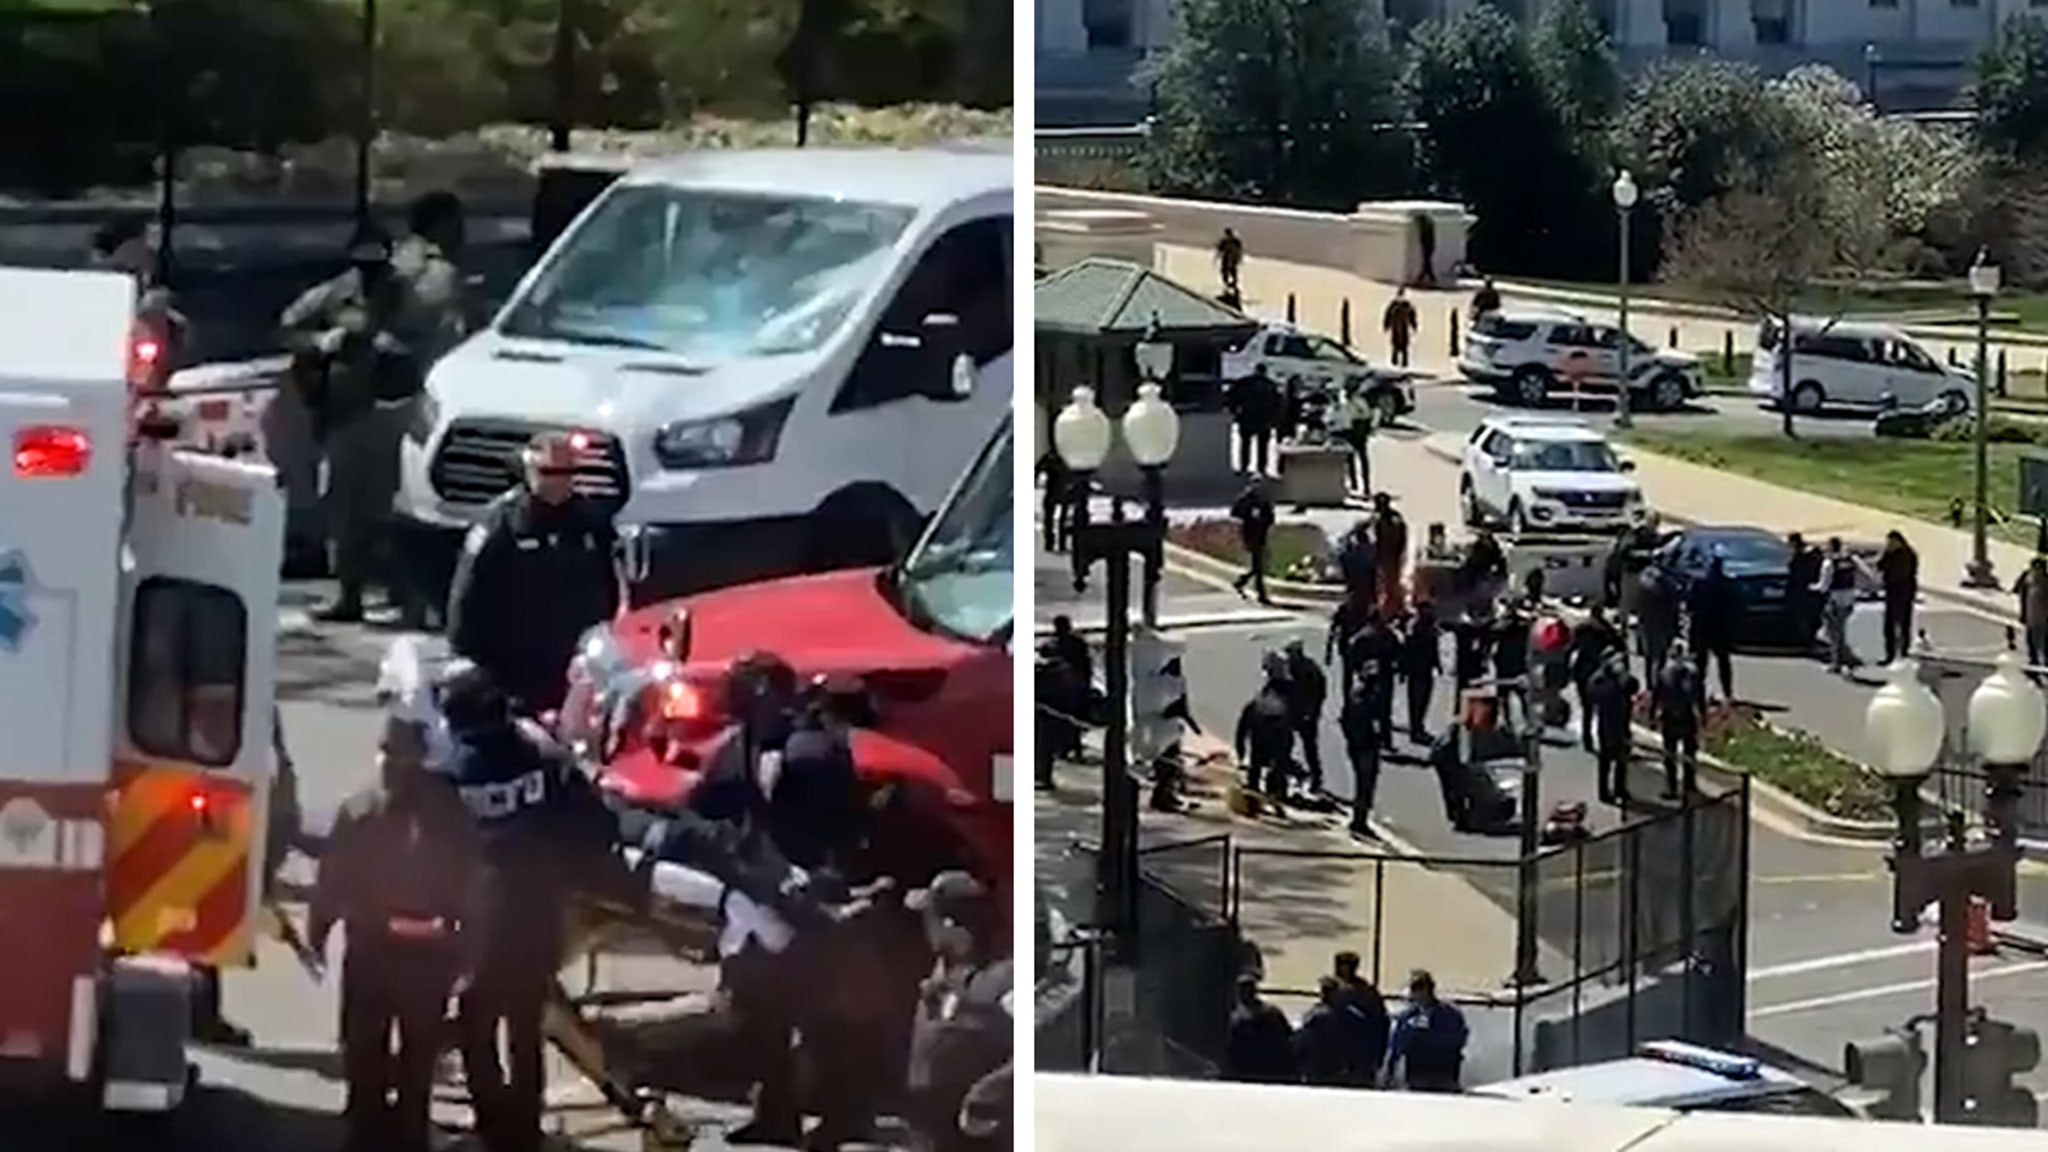 U.S. Capitol on Lockdown After Car Hits 2 Cops, Suspect and 1 Cop Dead thumbnail